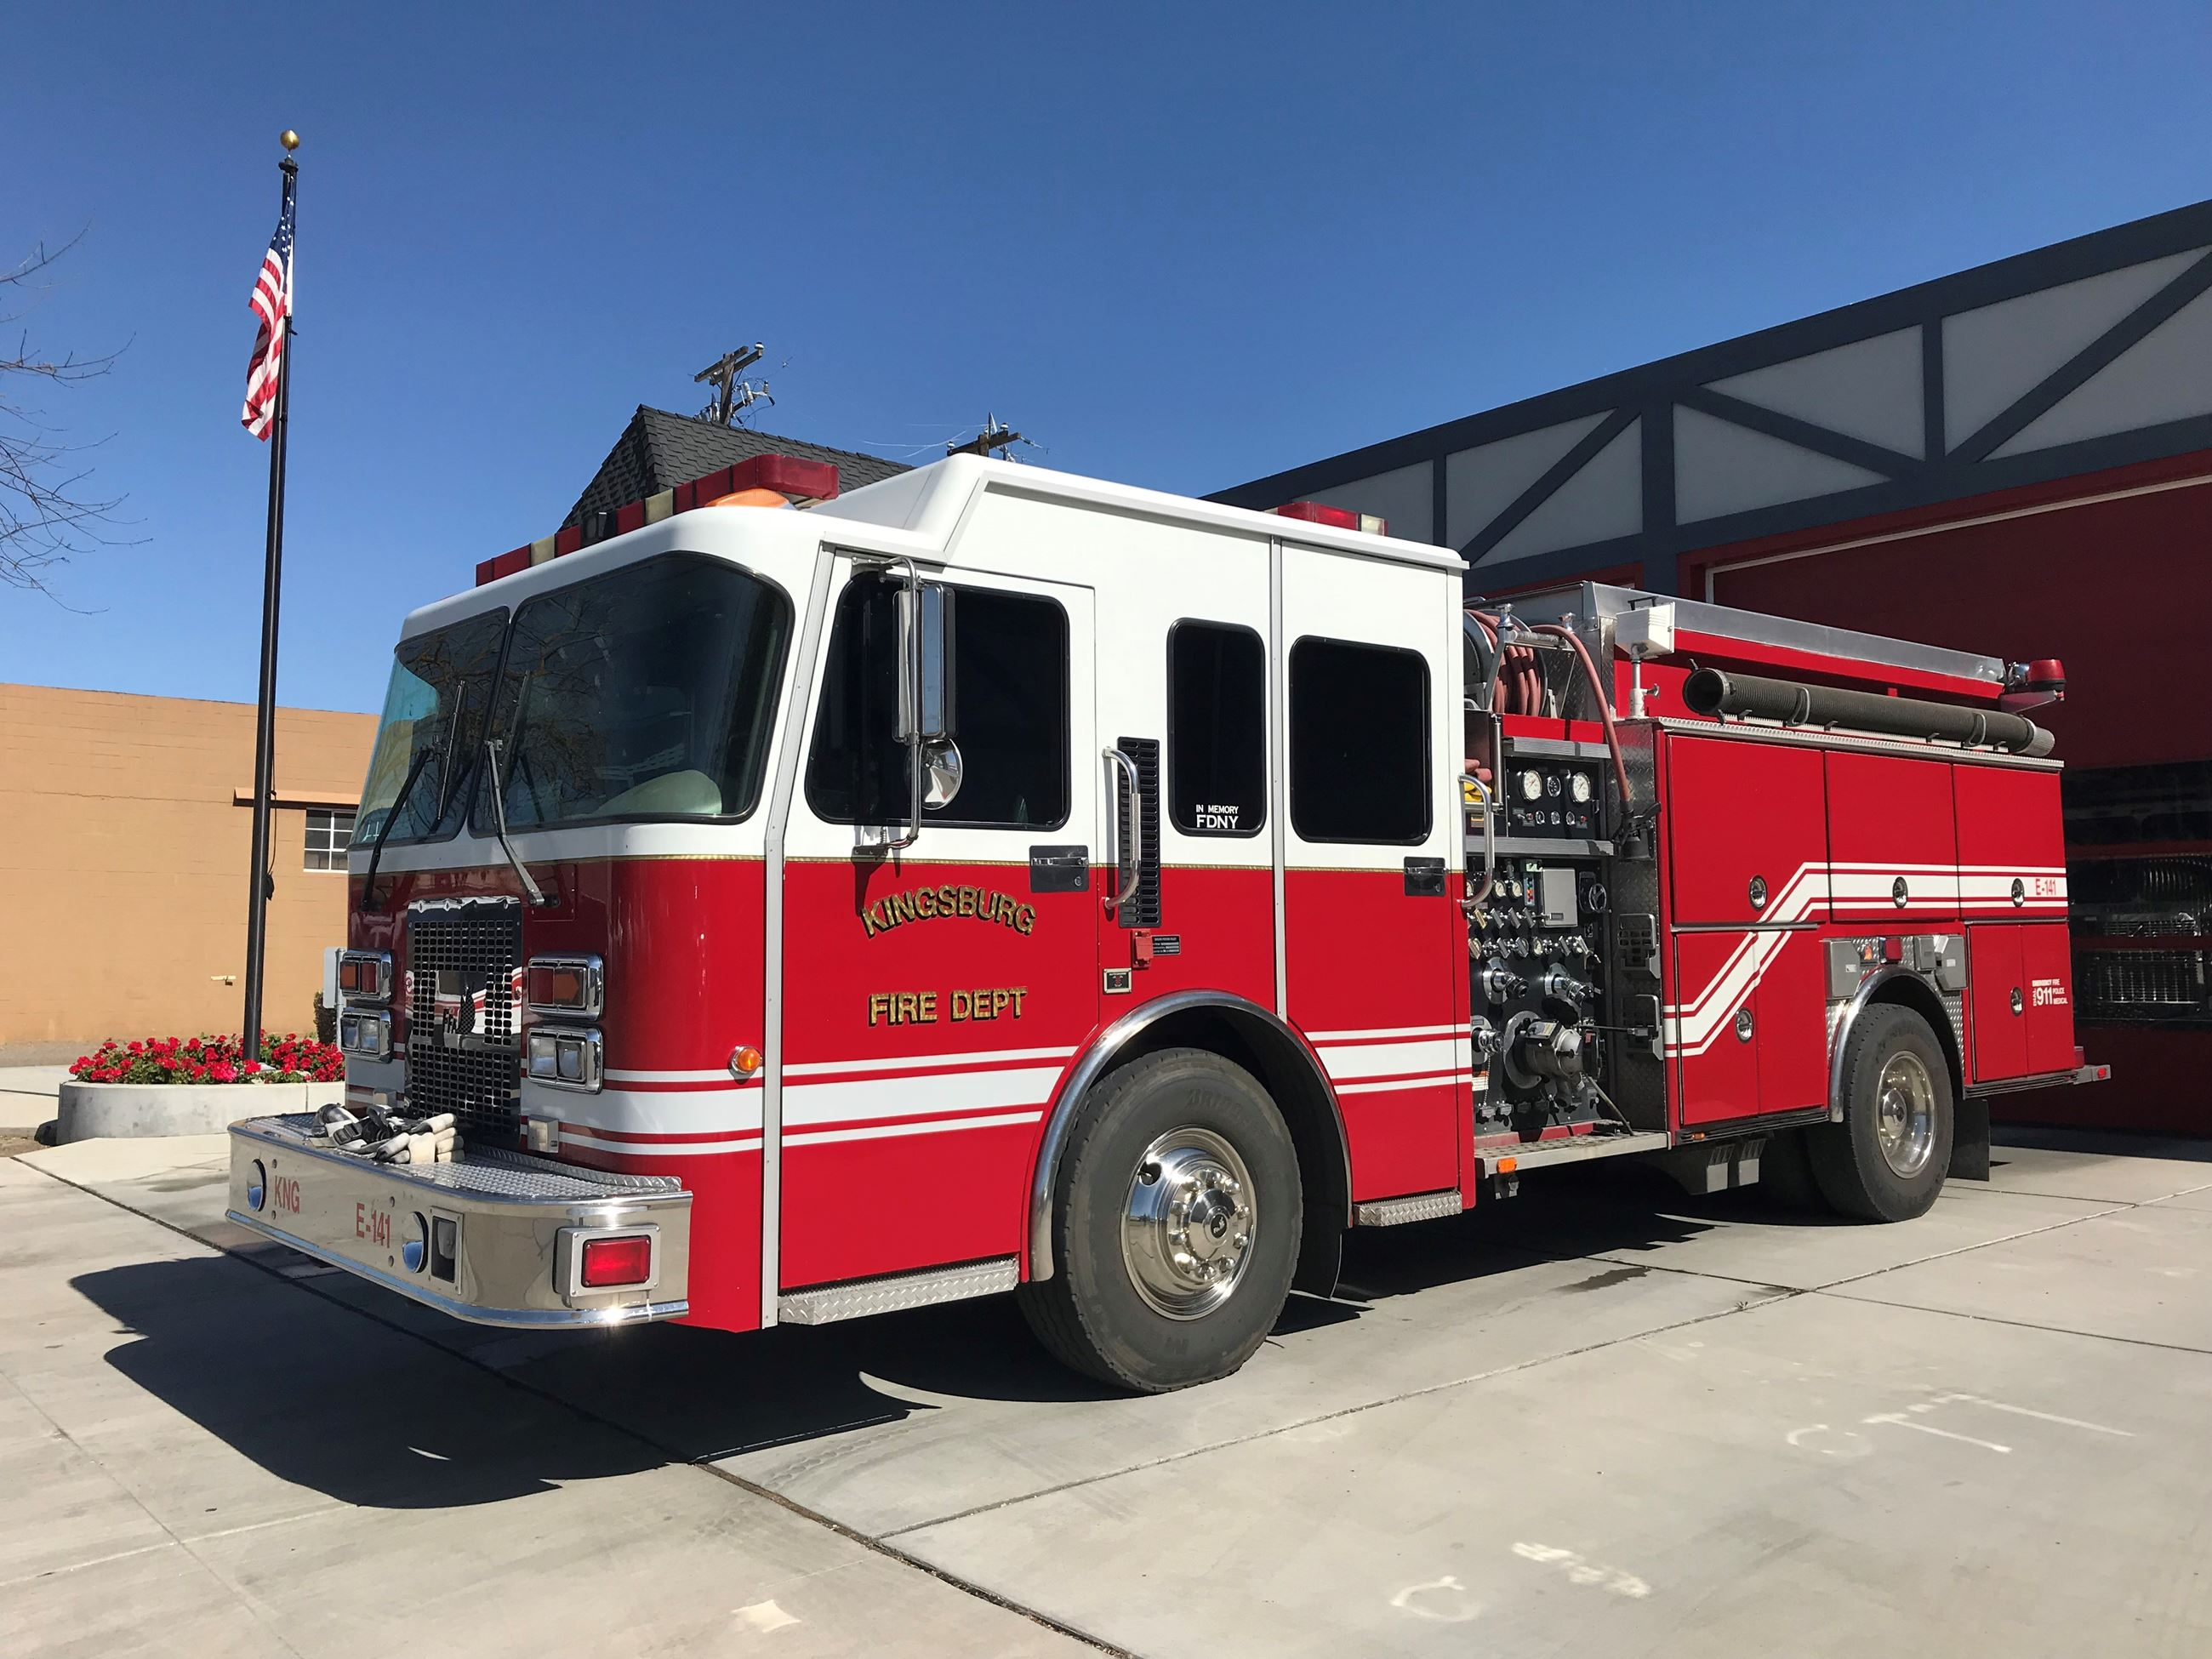 Reserve Engine 141